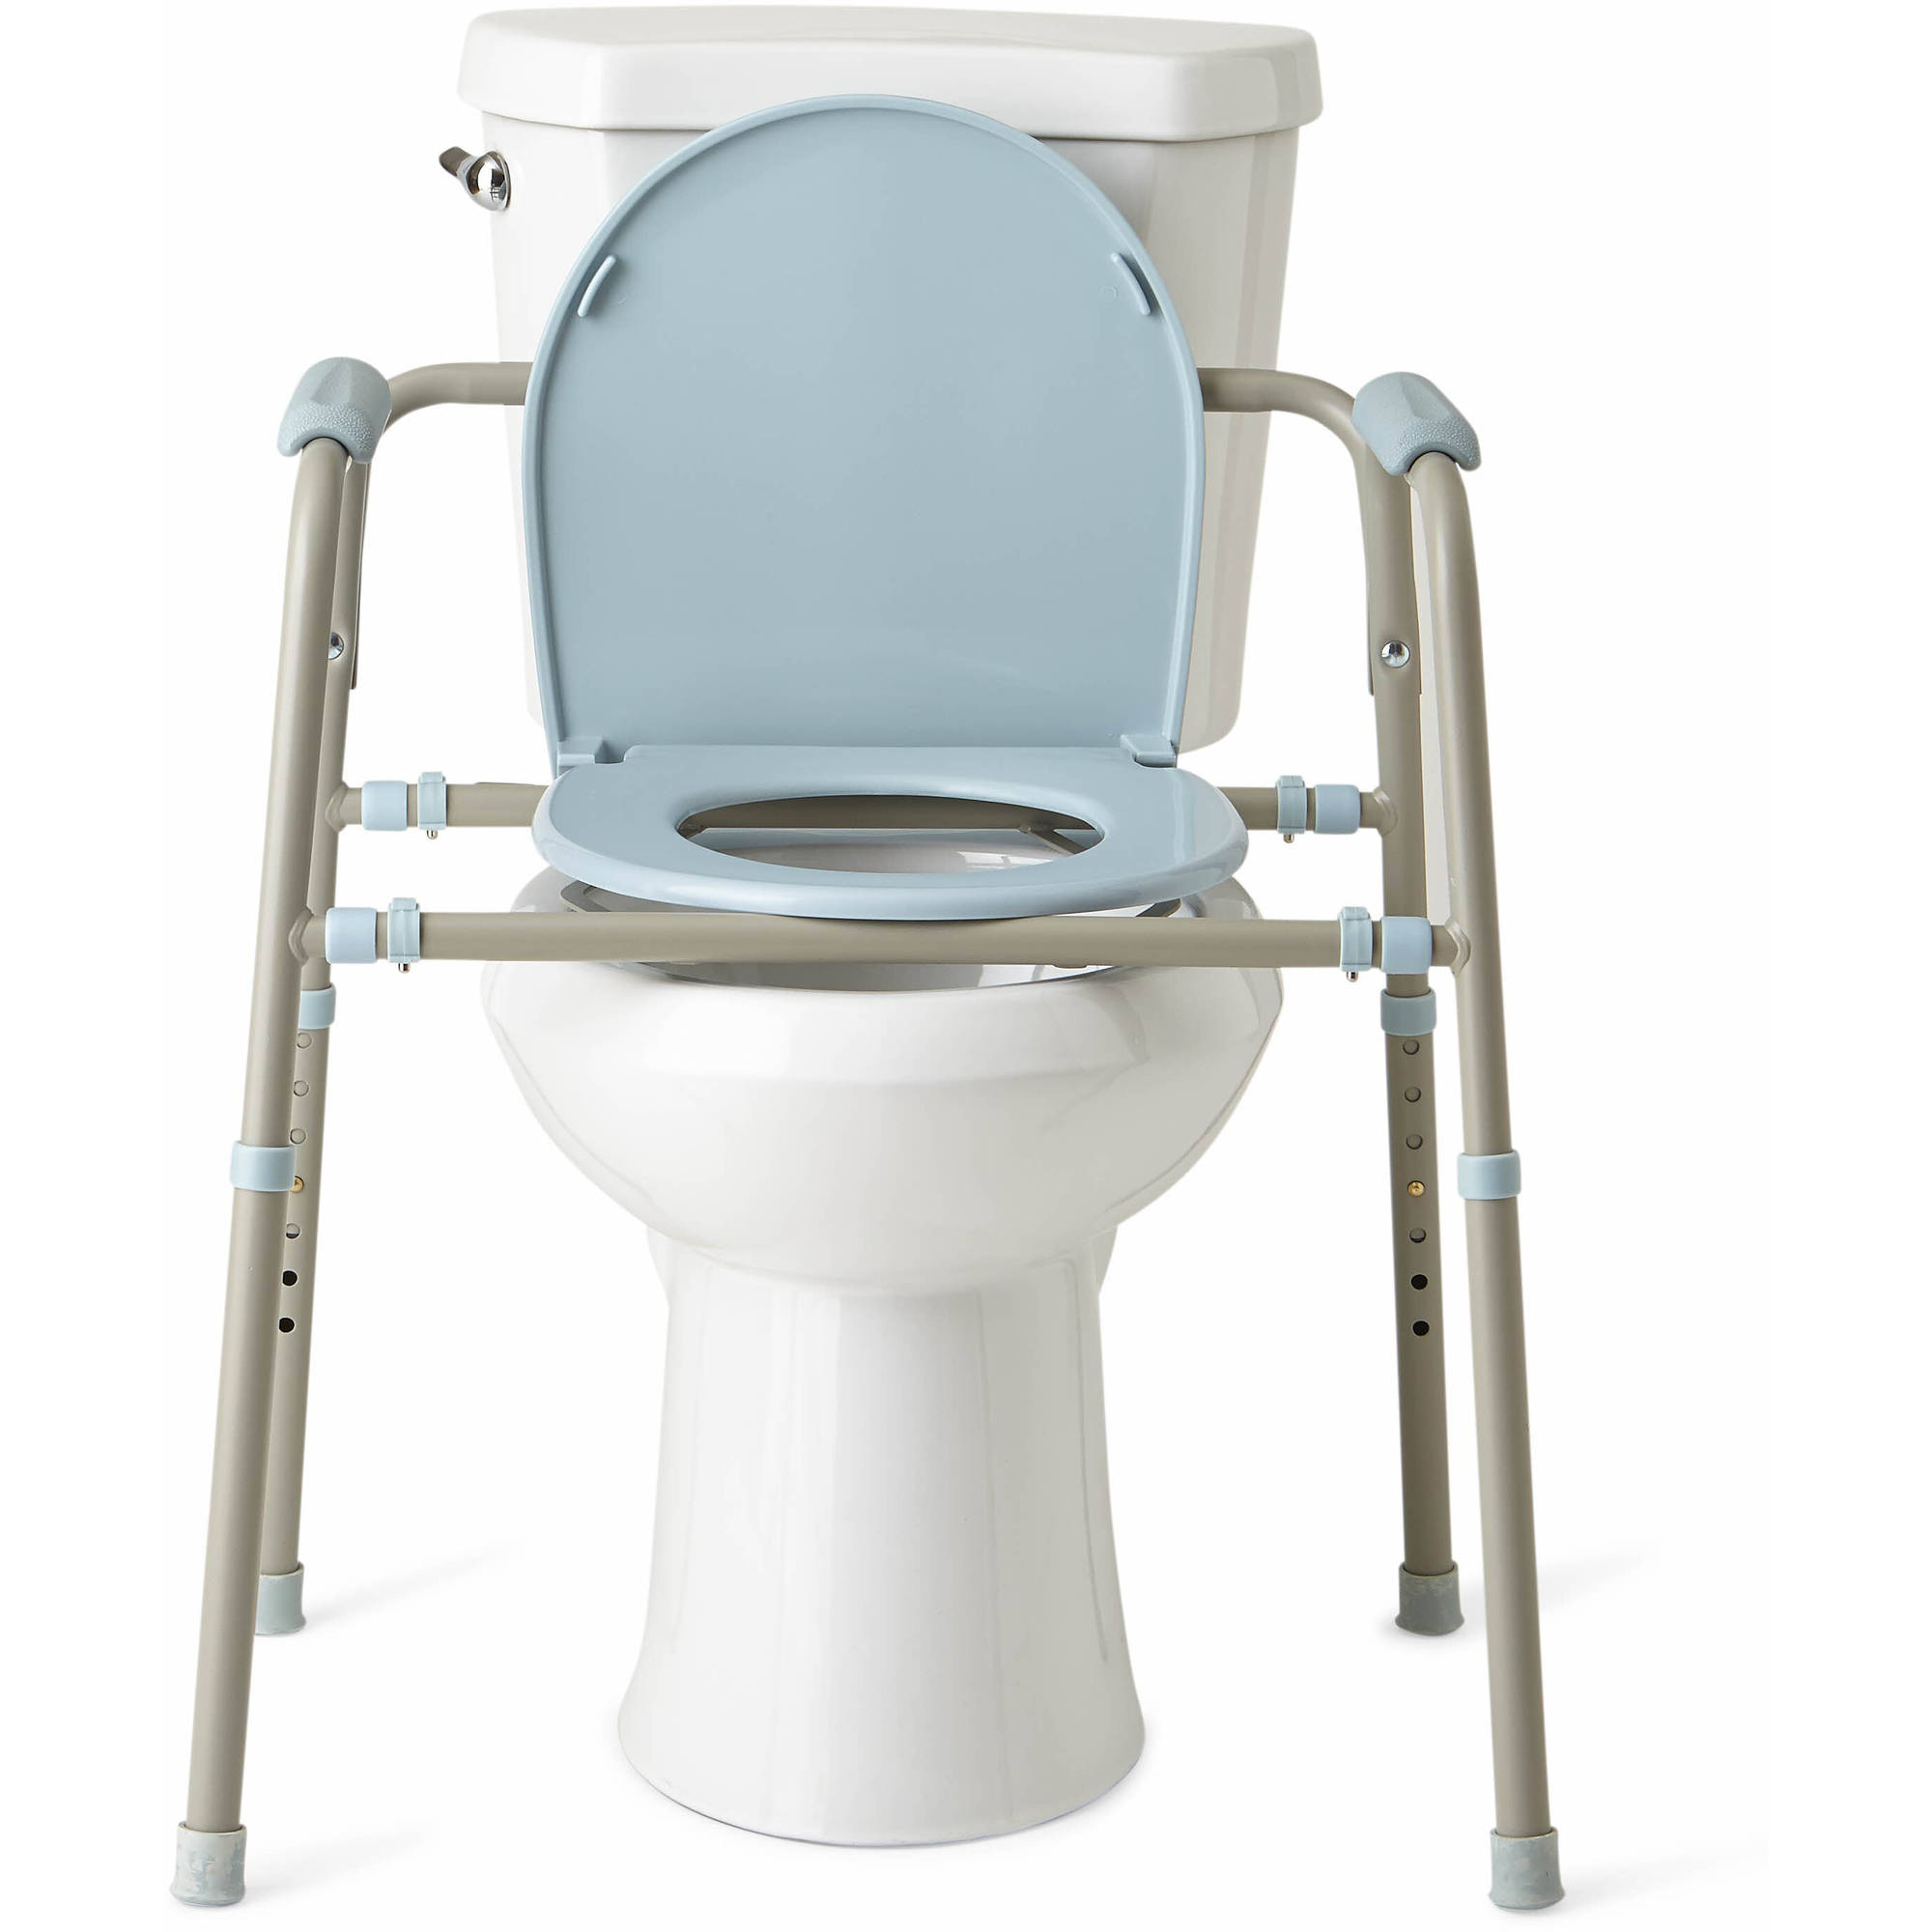 Medline Steel 3 in 1 Bedside Toilet Commode with Microban   Walmart com